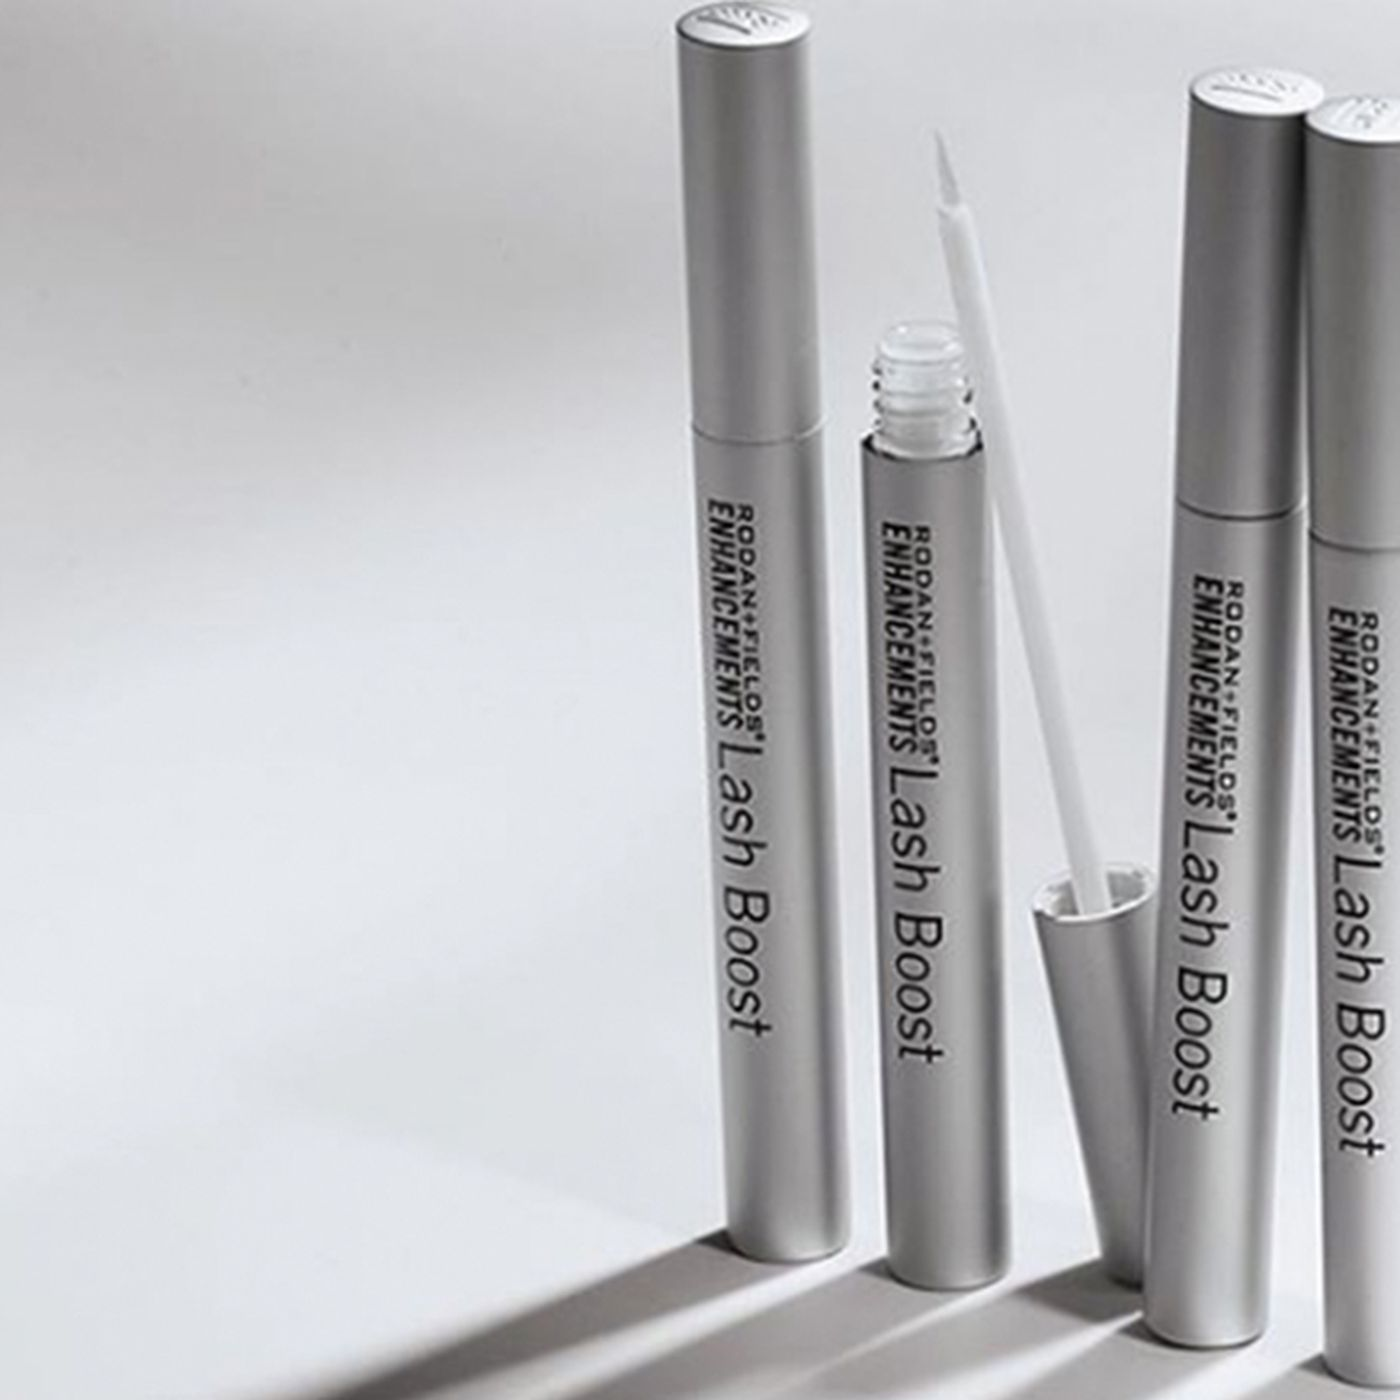 0dcd126b663 Rodan + Fields, the Beauty Brand Your Facebook Friends Are Always Pushing,  Is Facing a Class-Action Suit. Lash Boost ...